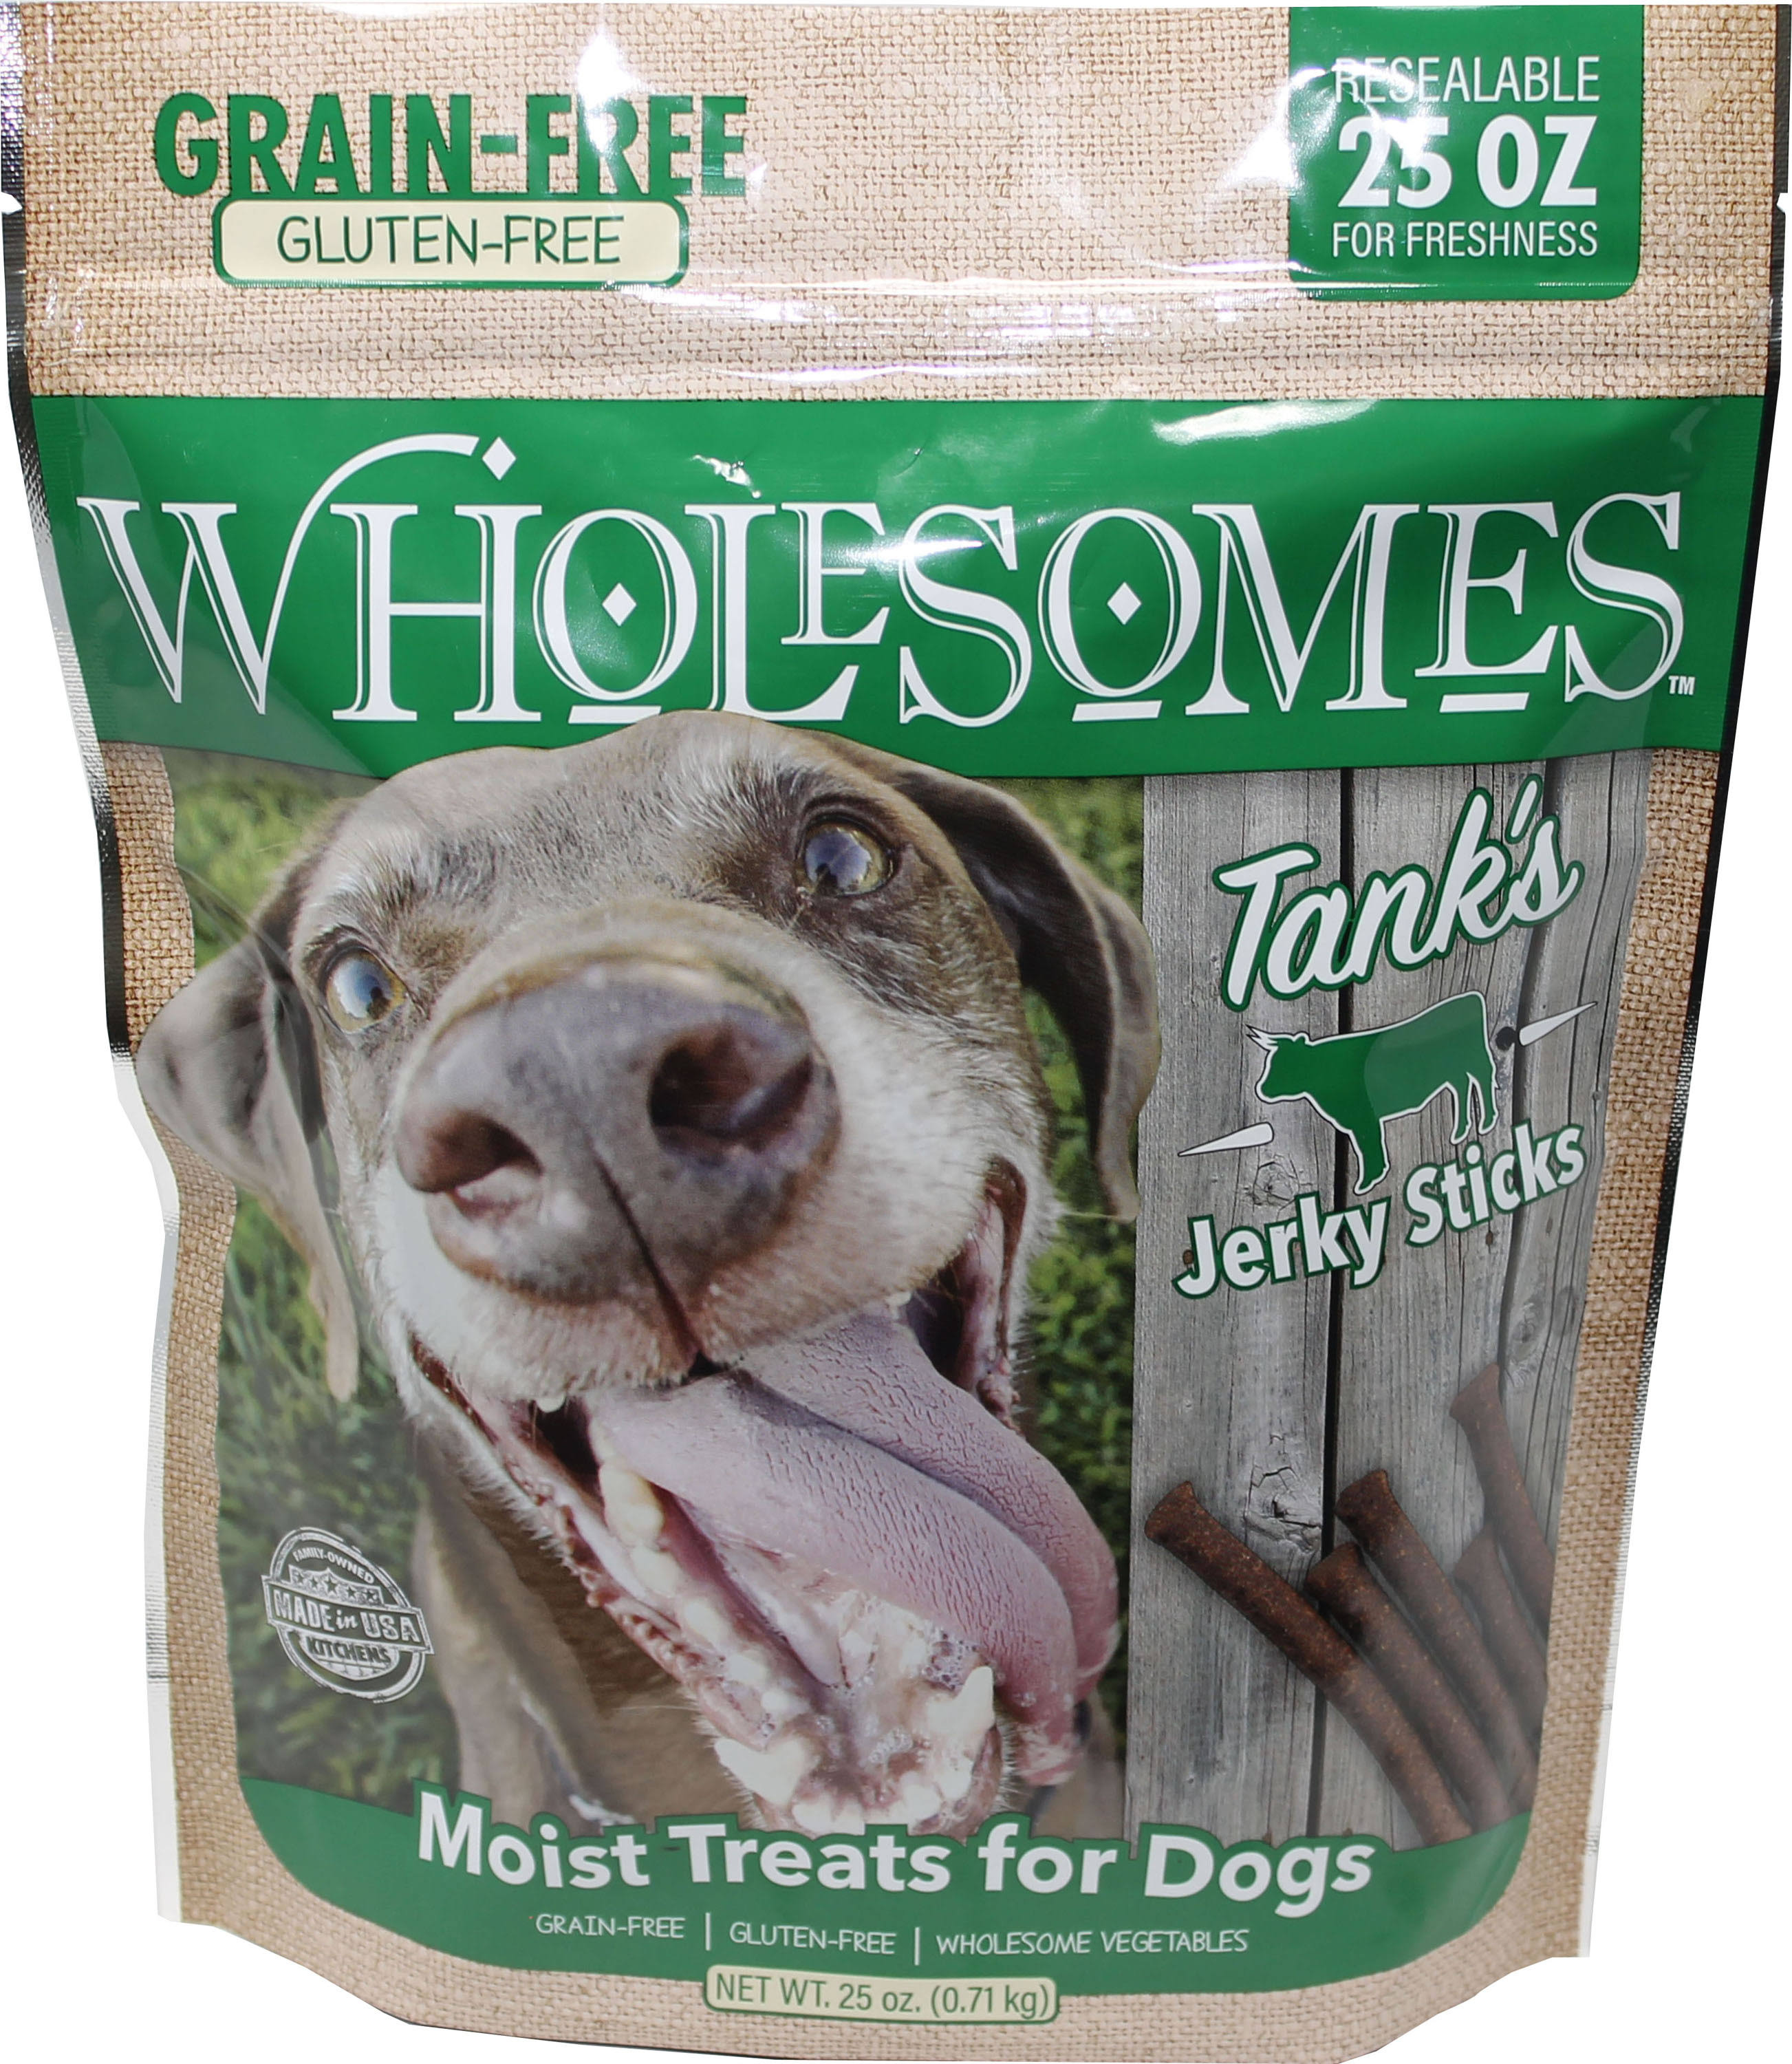 Wholesomes Tank's Jerky Sticks Grain Free Dog Treats, 25 oz